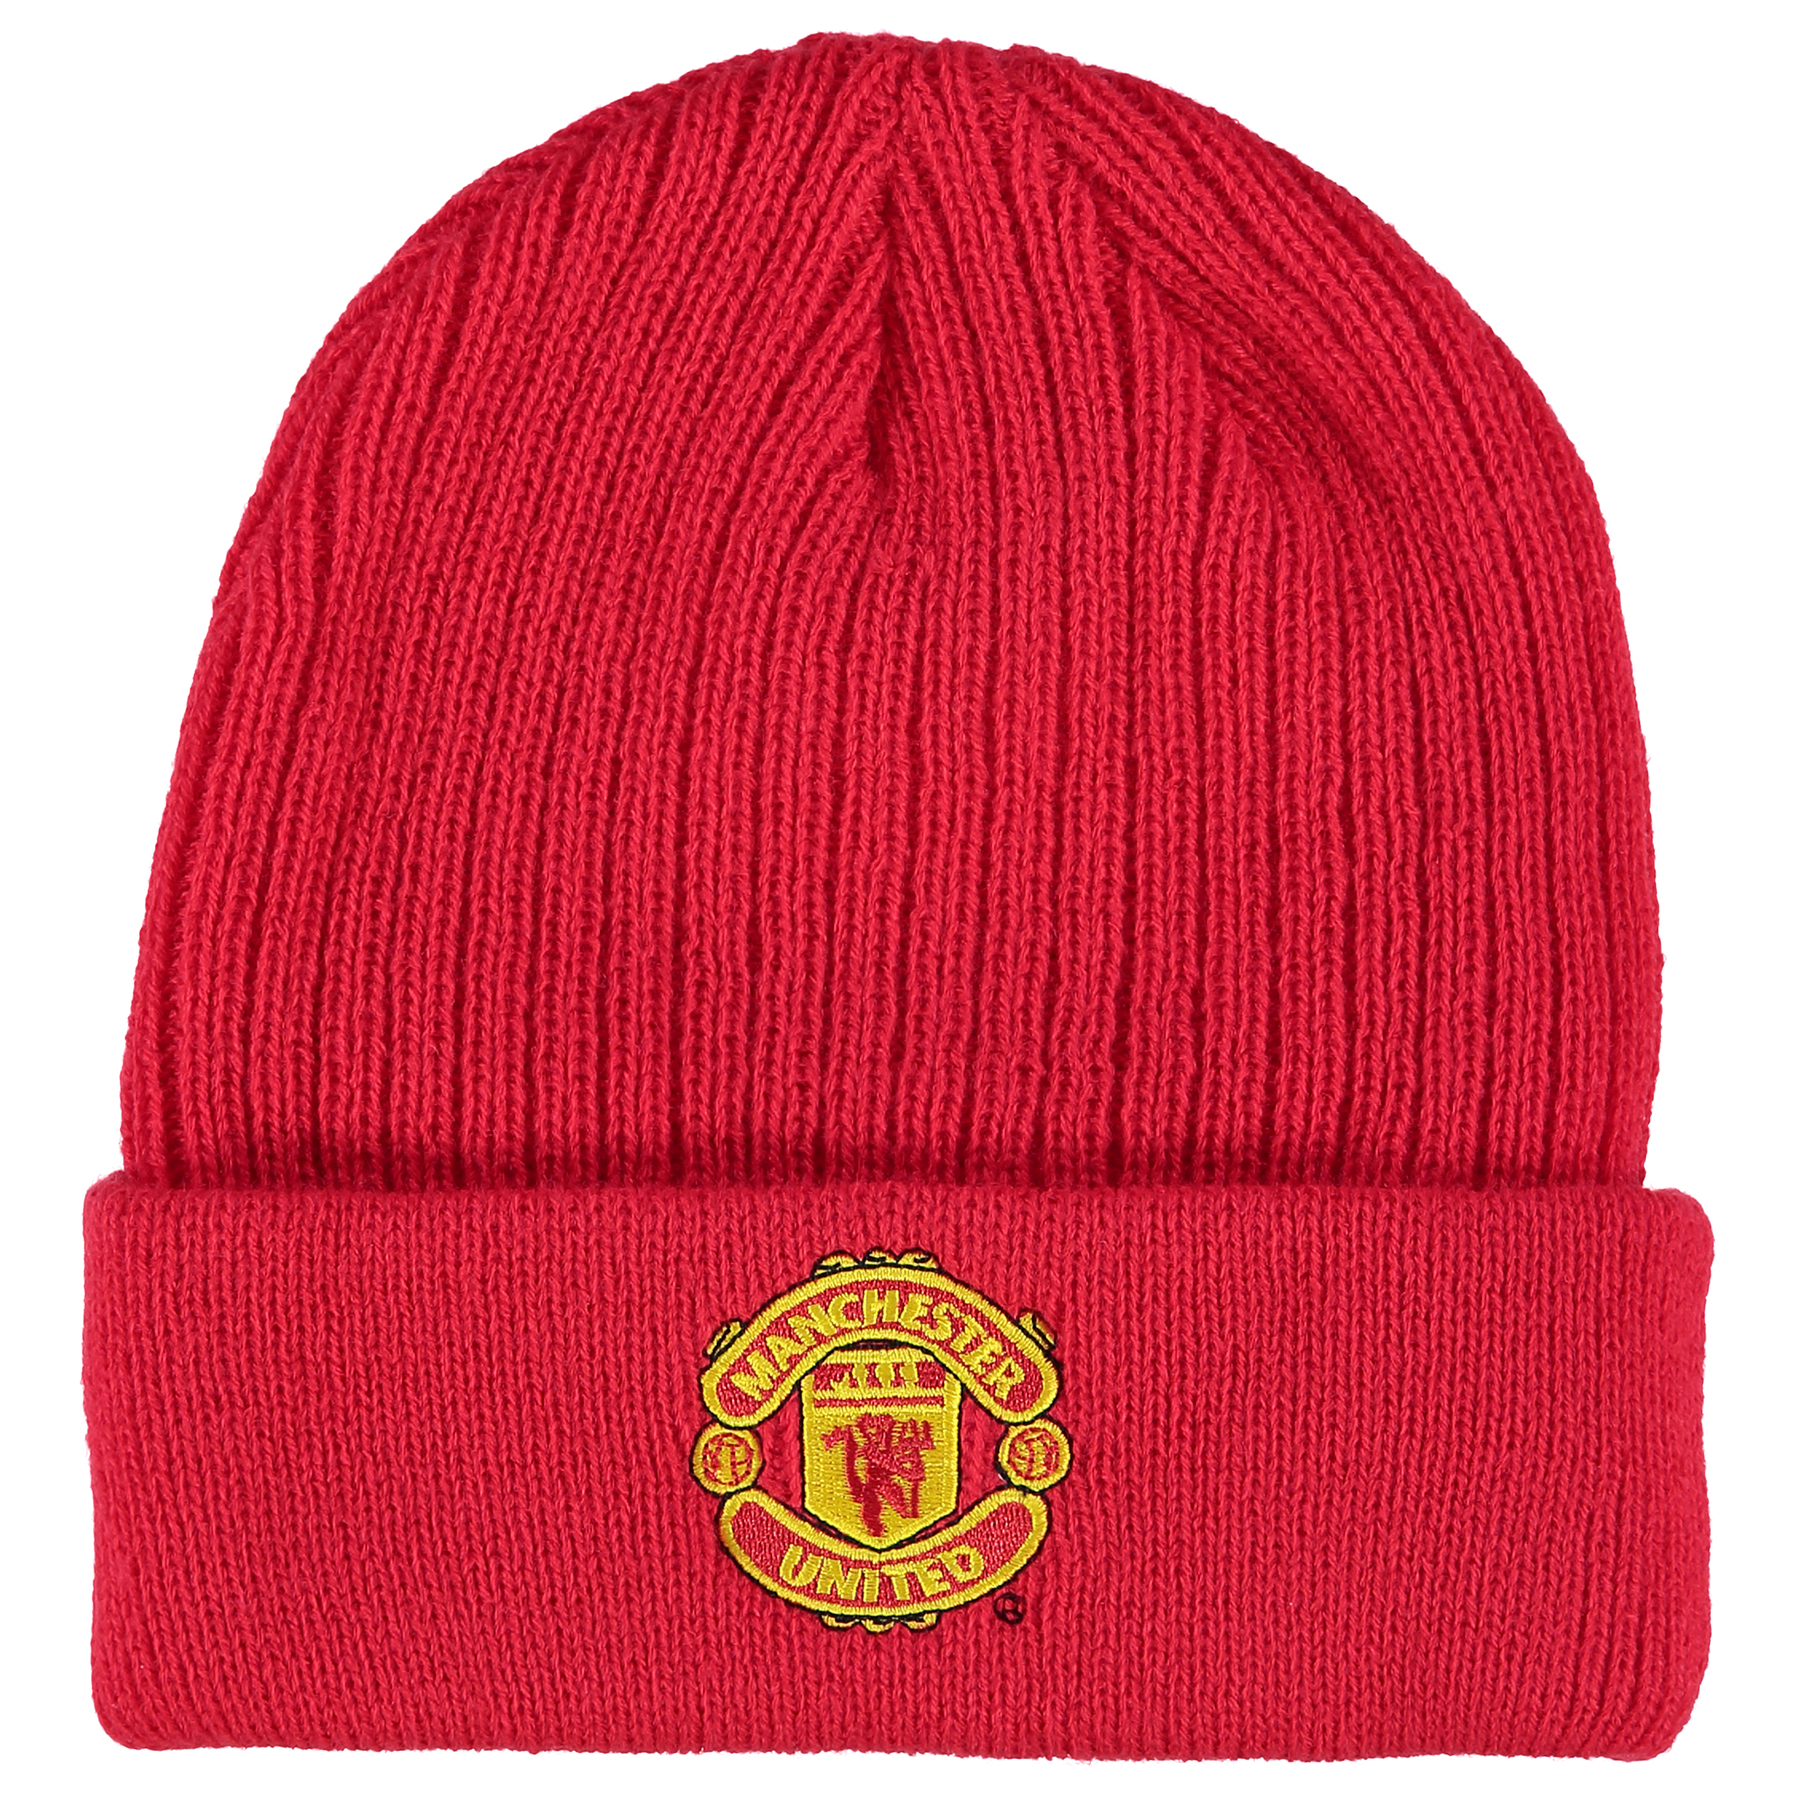 Manchester United Core Crest Hat - Red - Mens